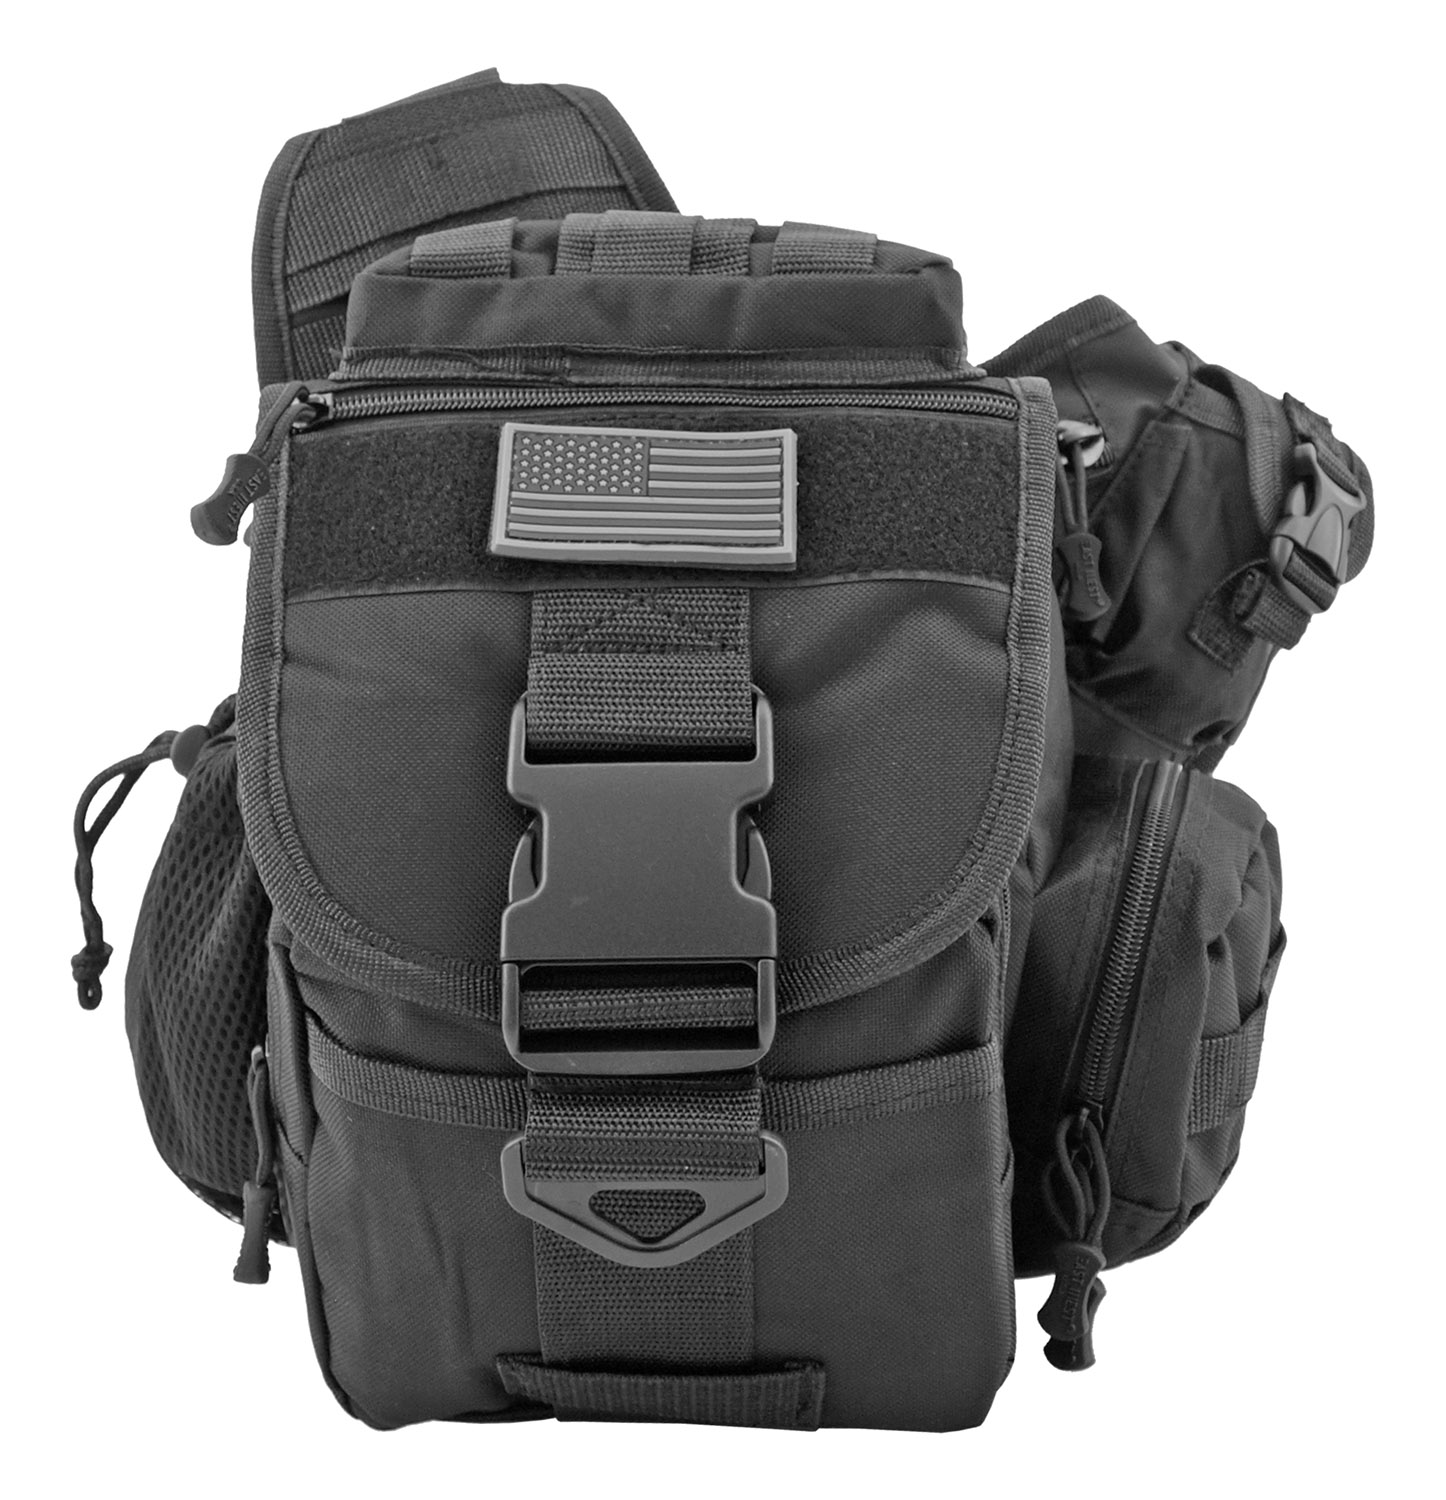 Trail Walker Tactical Over Shoulder Hip Day Bag - Black